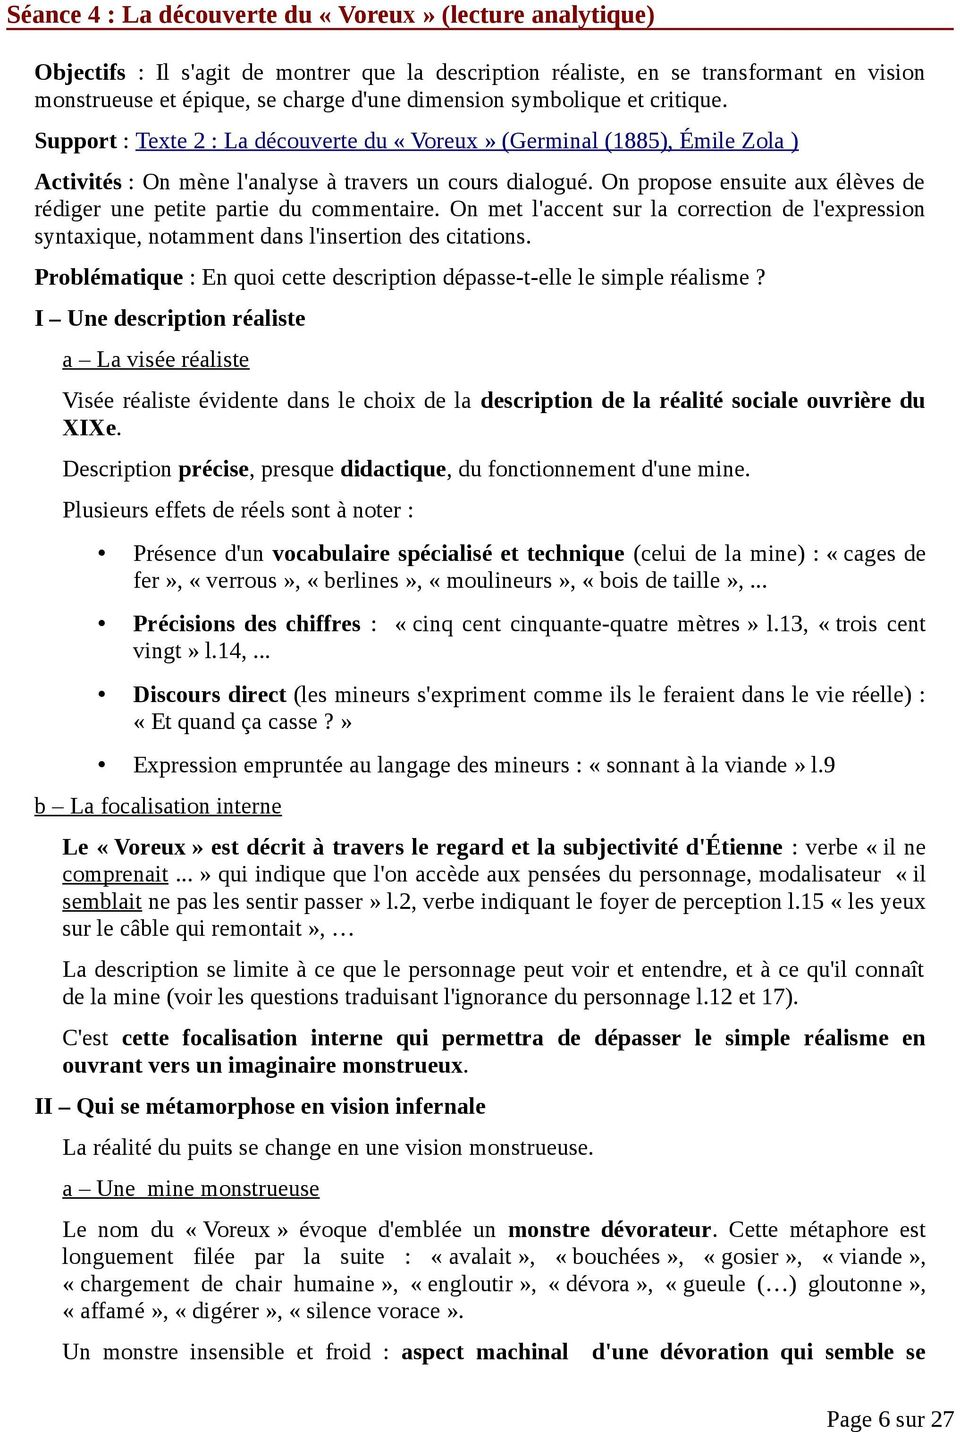 On propose ensuite aux élèves de rédiger une petite partie du commentaire. On met l'accent sur la correction de l'expression syntaxique, notamment dans l'insertion des citations.